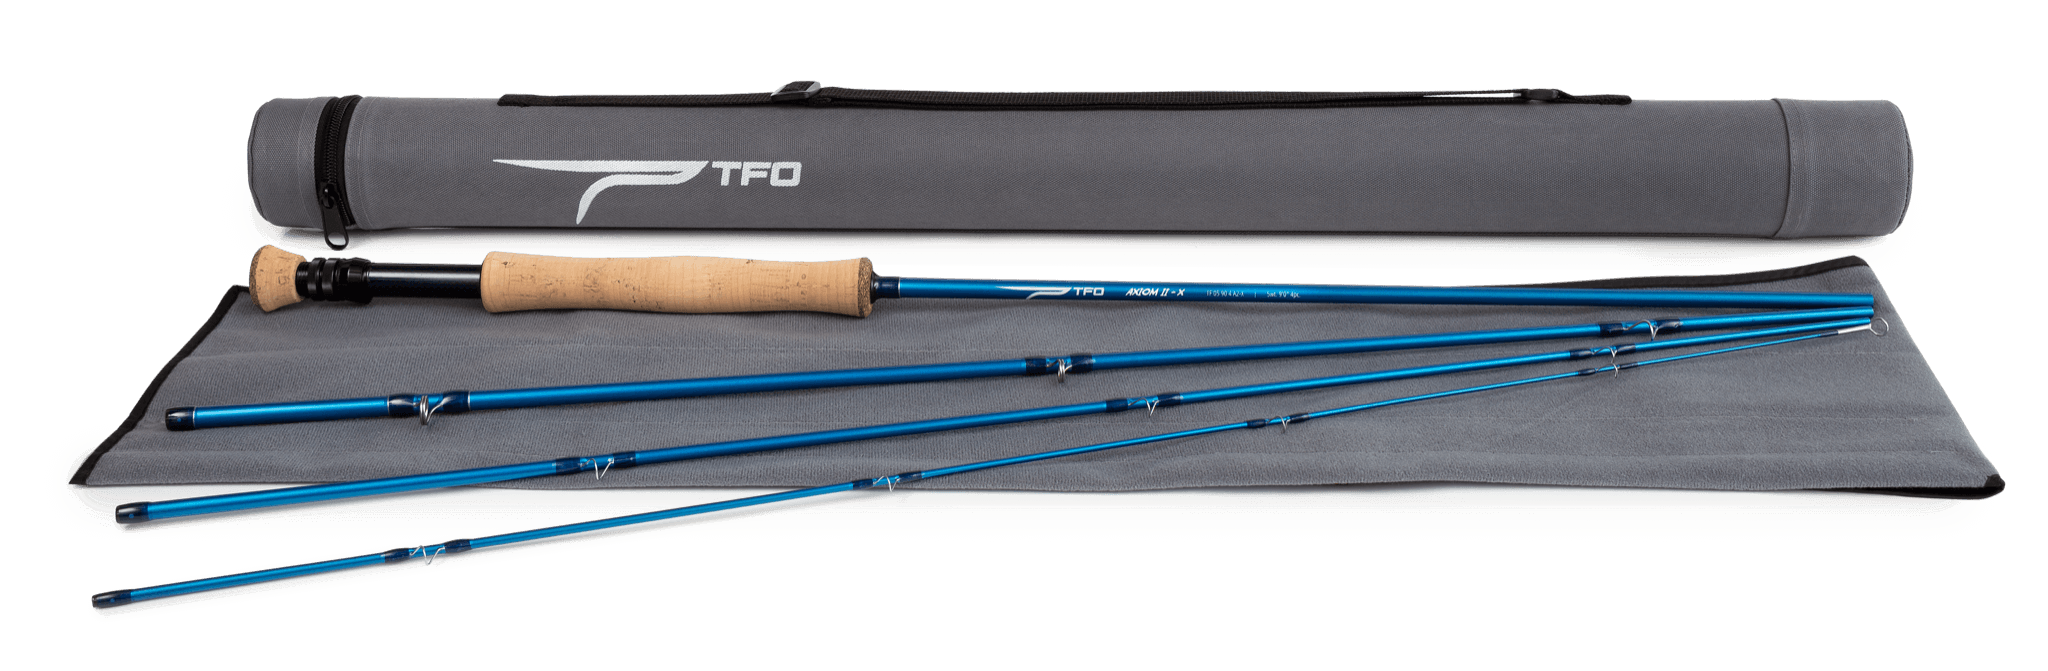 TFO Axiom II-X - one of the possible prizes for Mylar Summer Pickup contestants!